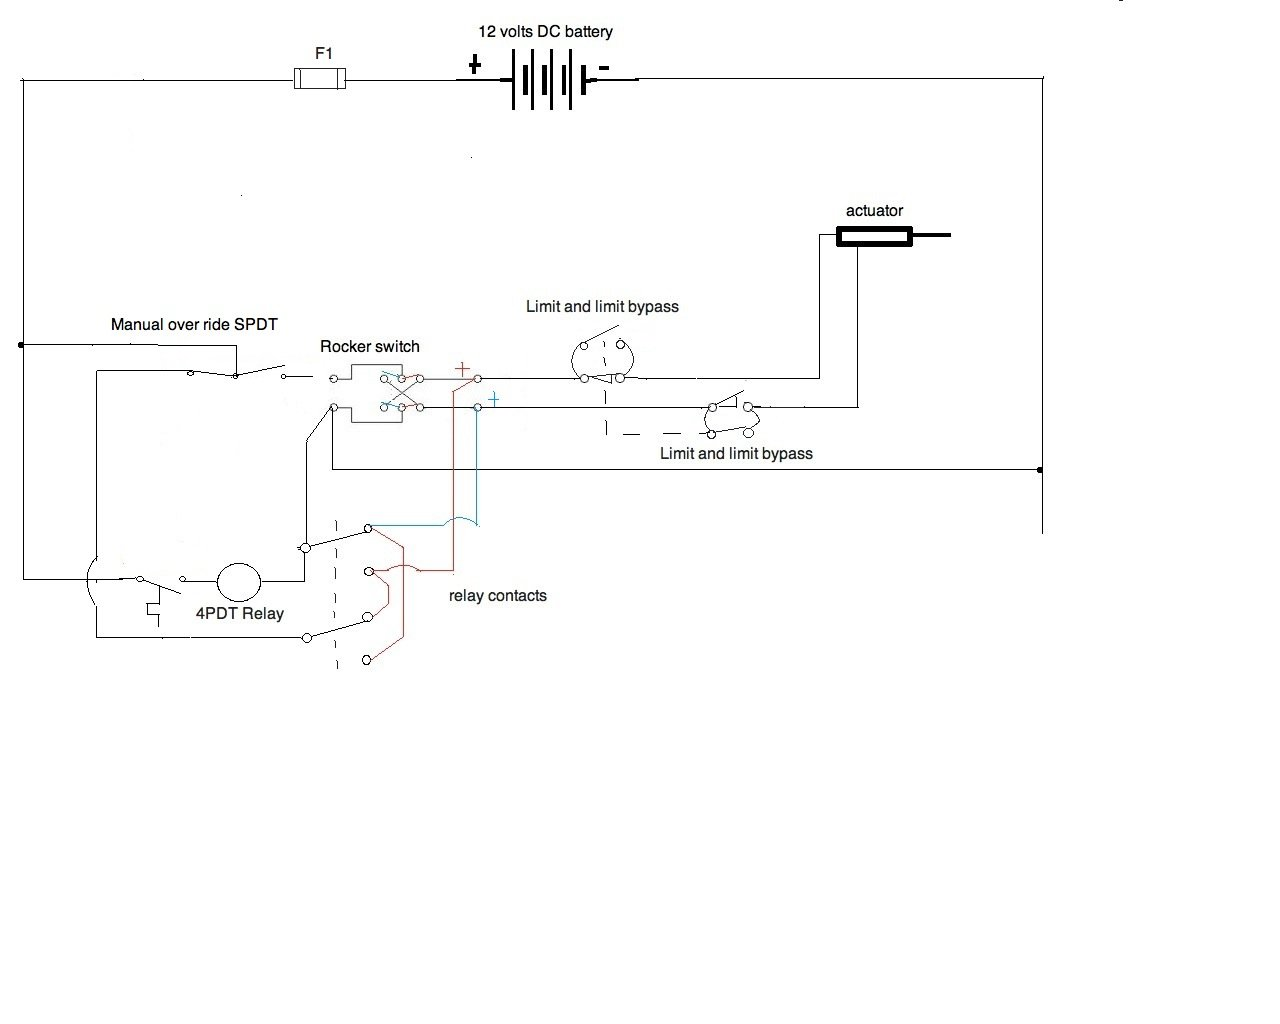 I Need A Wiring Diagram For A 12v Application  All